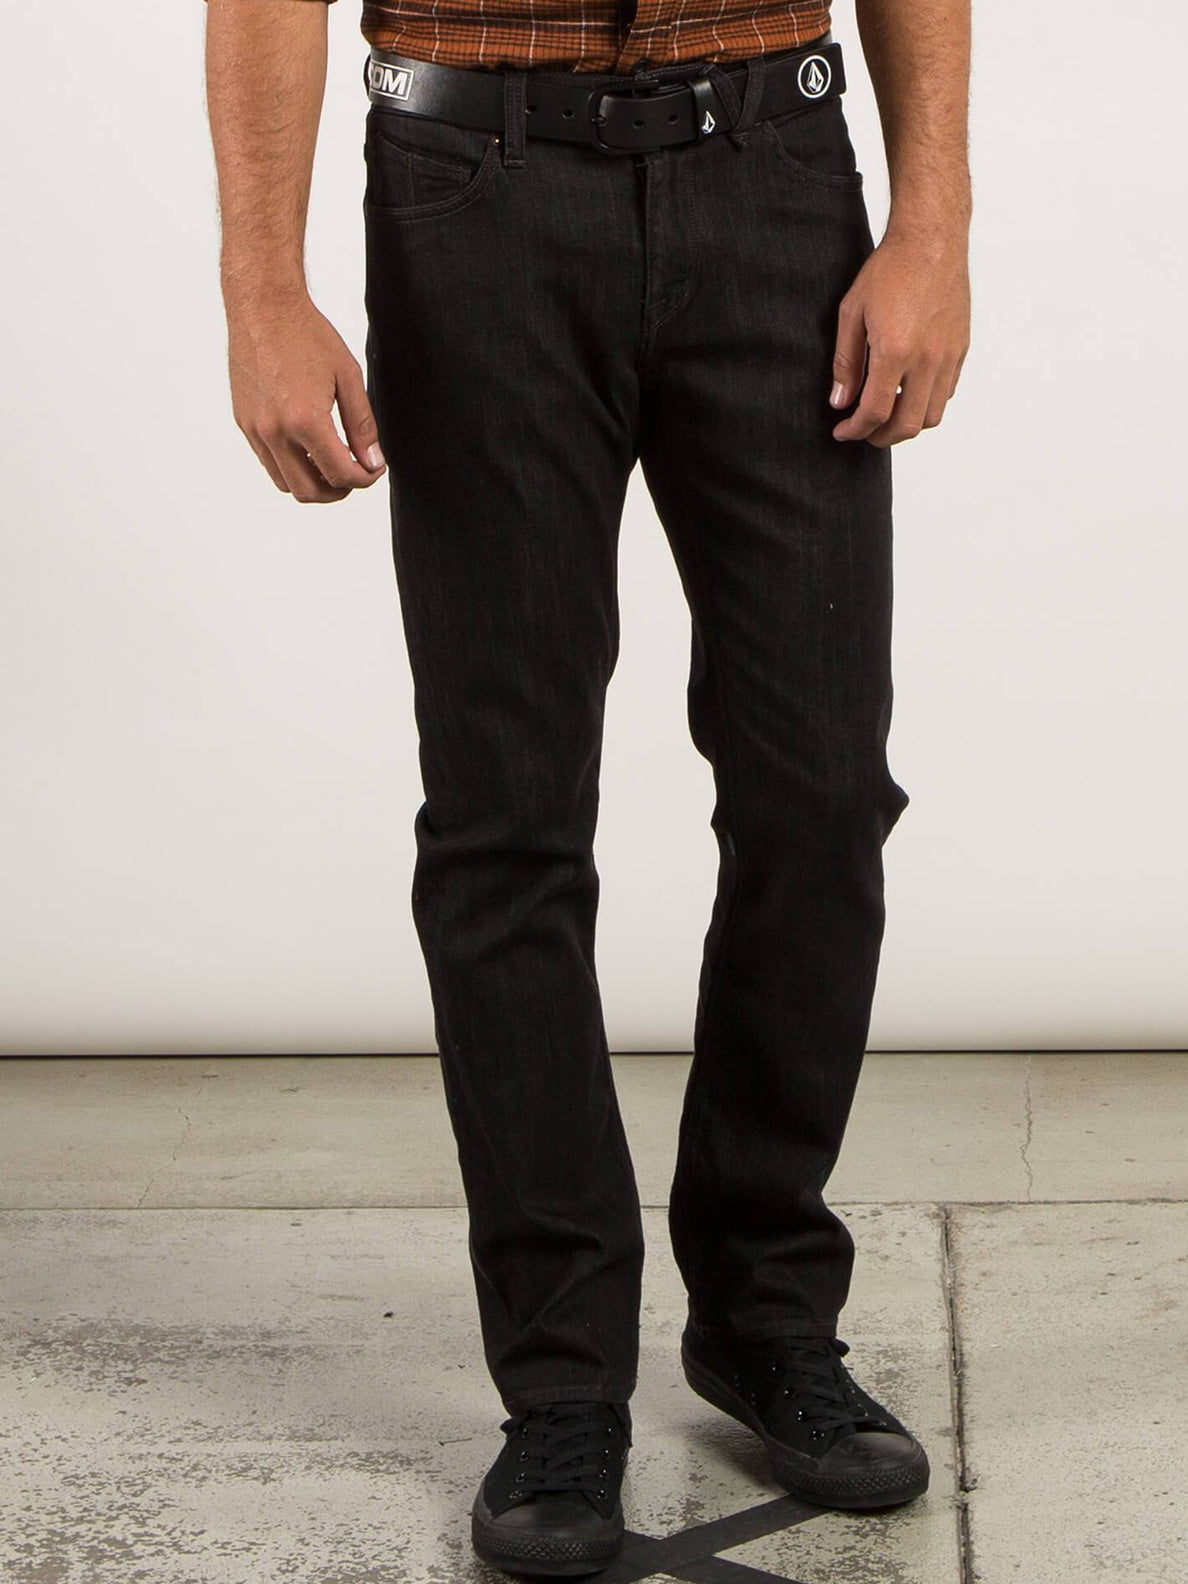 Jean Solver Denim - Black Rinser